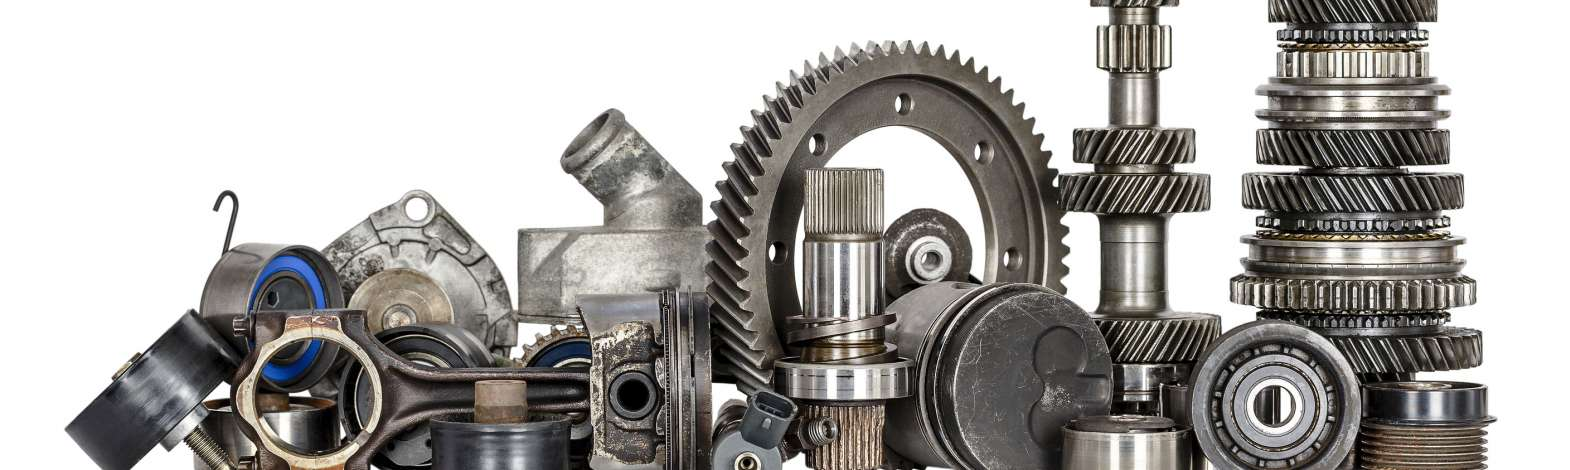 Dongfeng Spare Parts, Dongfeng Parts Dealer In UAE, SpareParts me